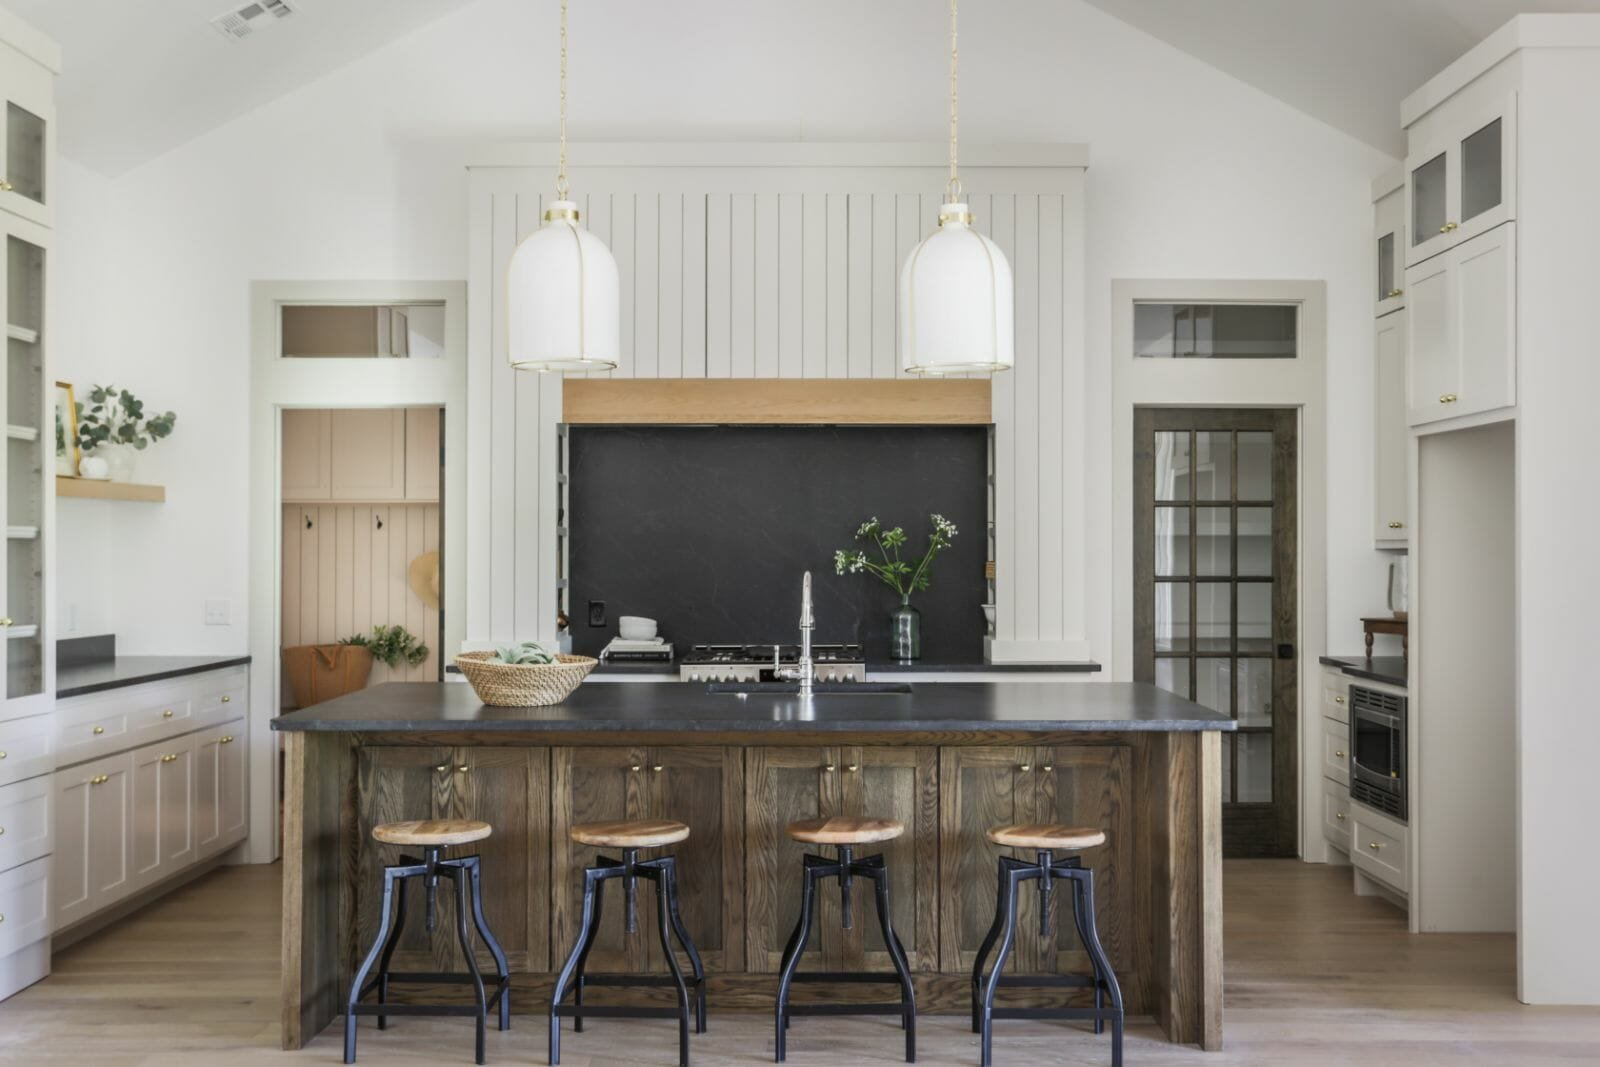 Rustic kitchen interior design, Okc by Kelsey Leigh